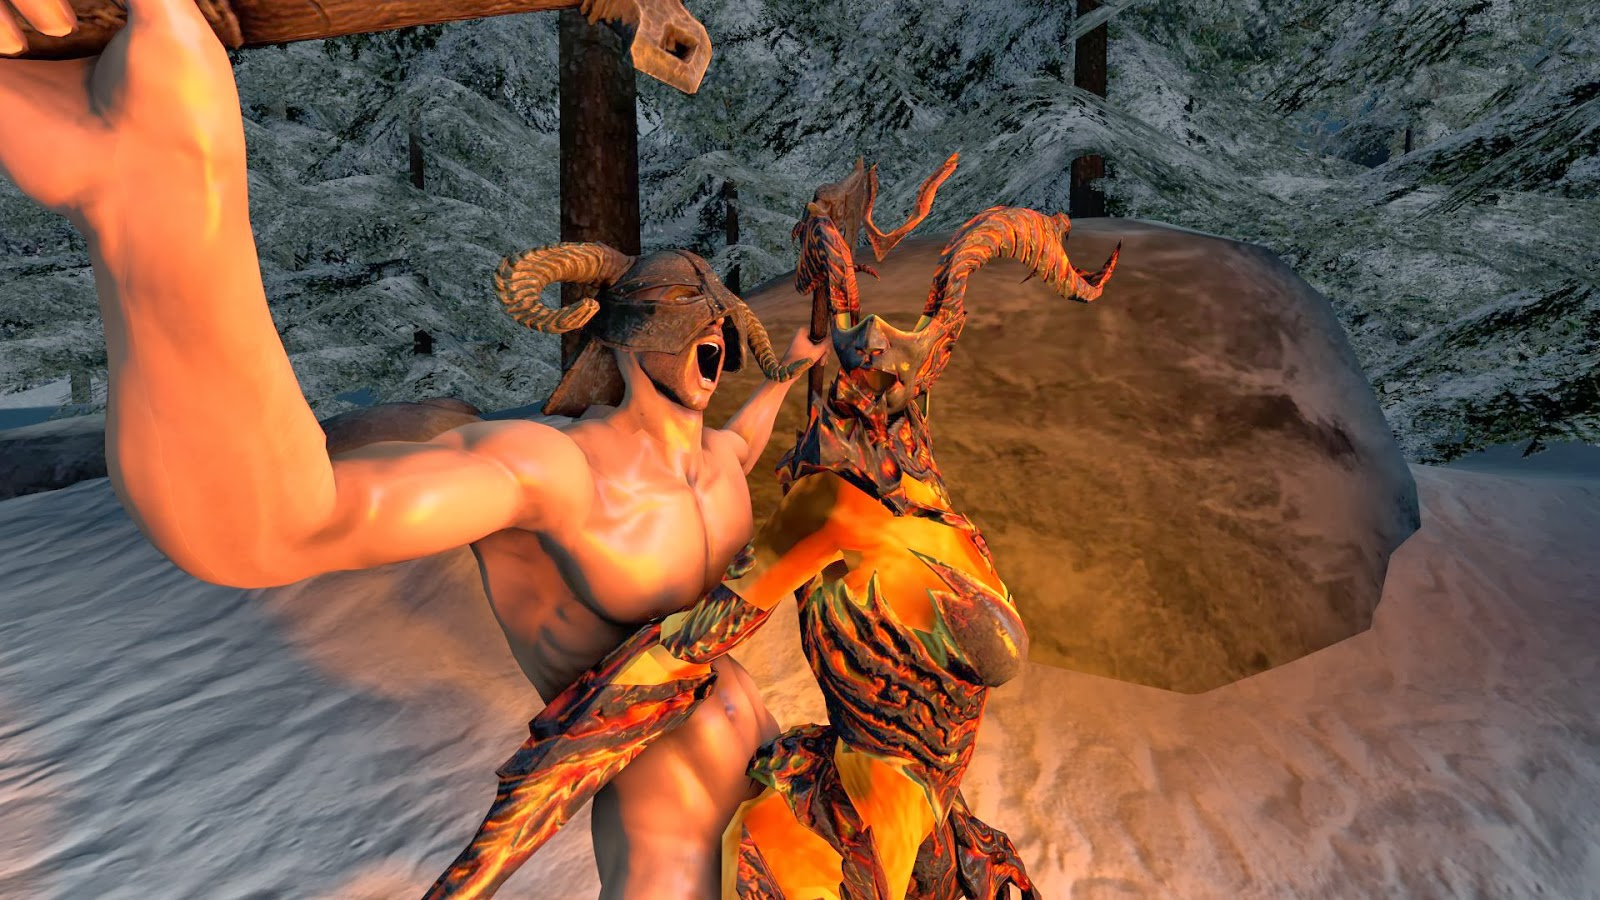 The elder scrolls female porn xxx pictures